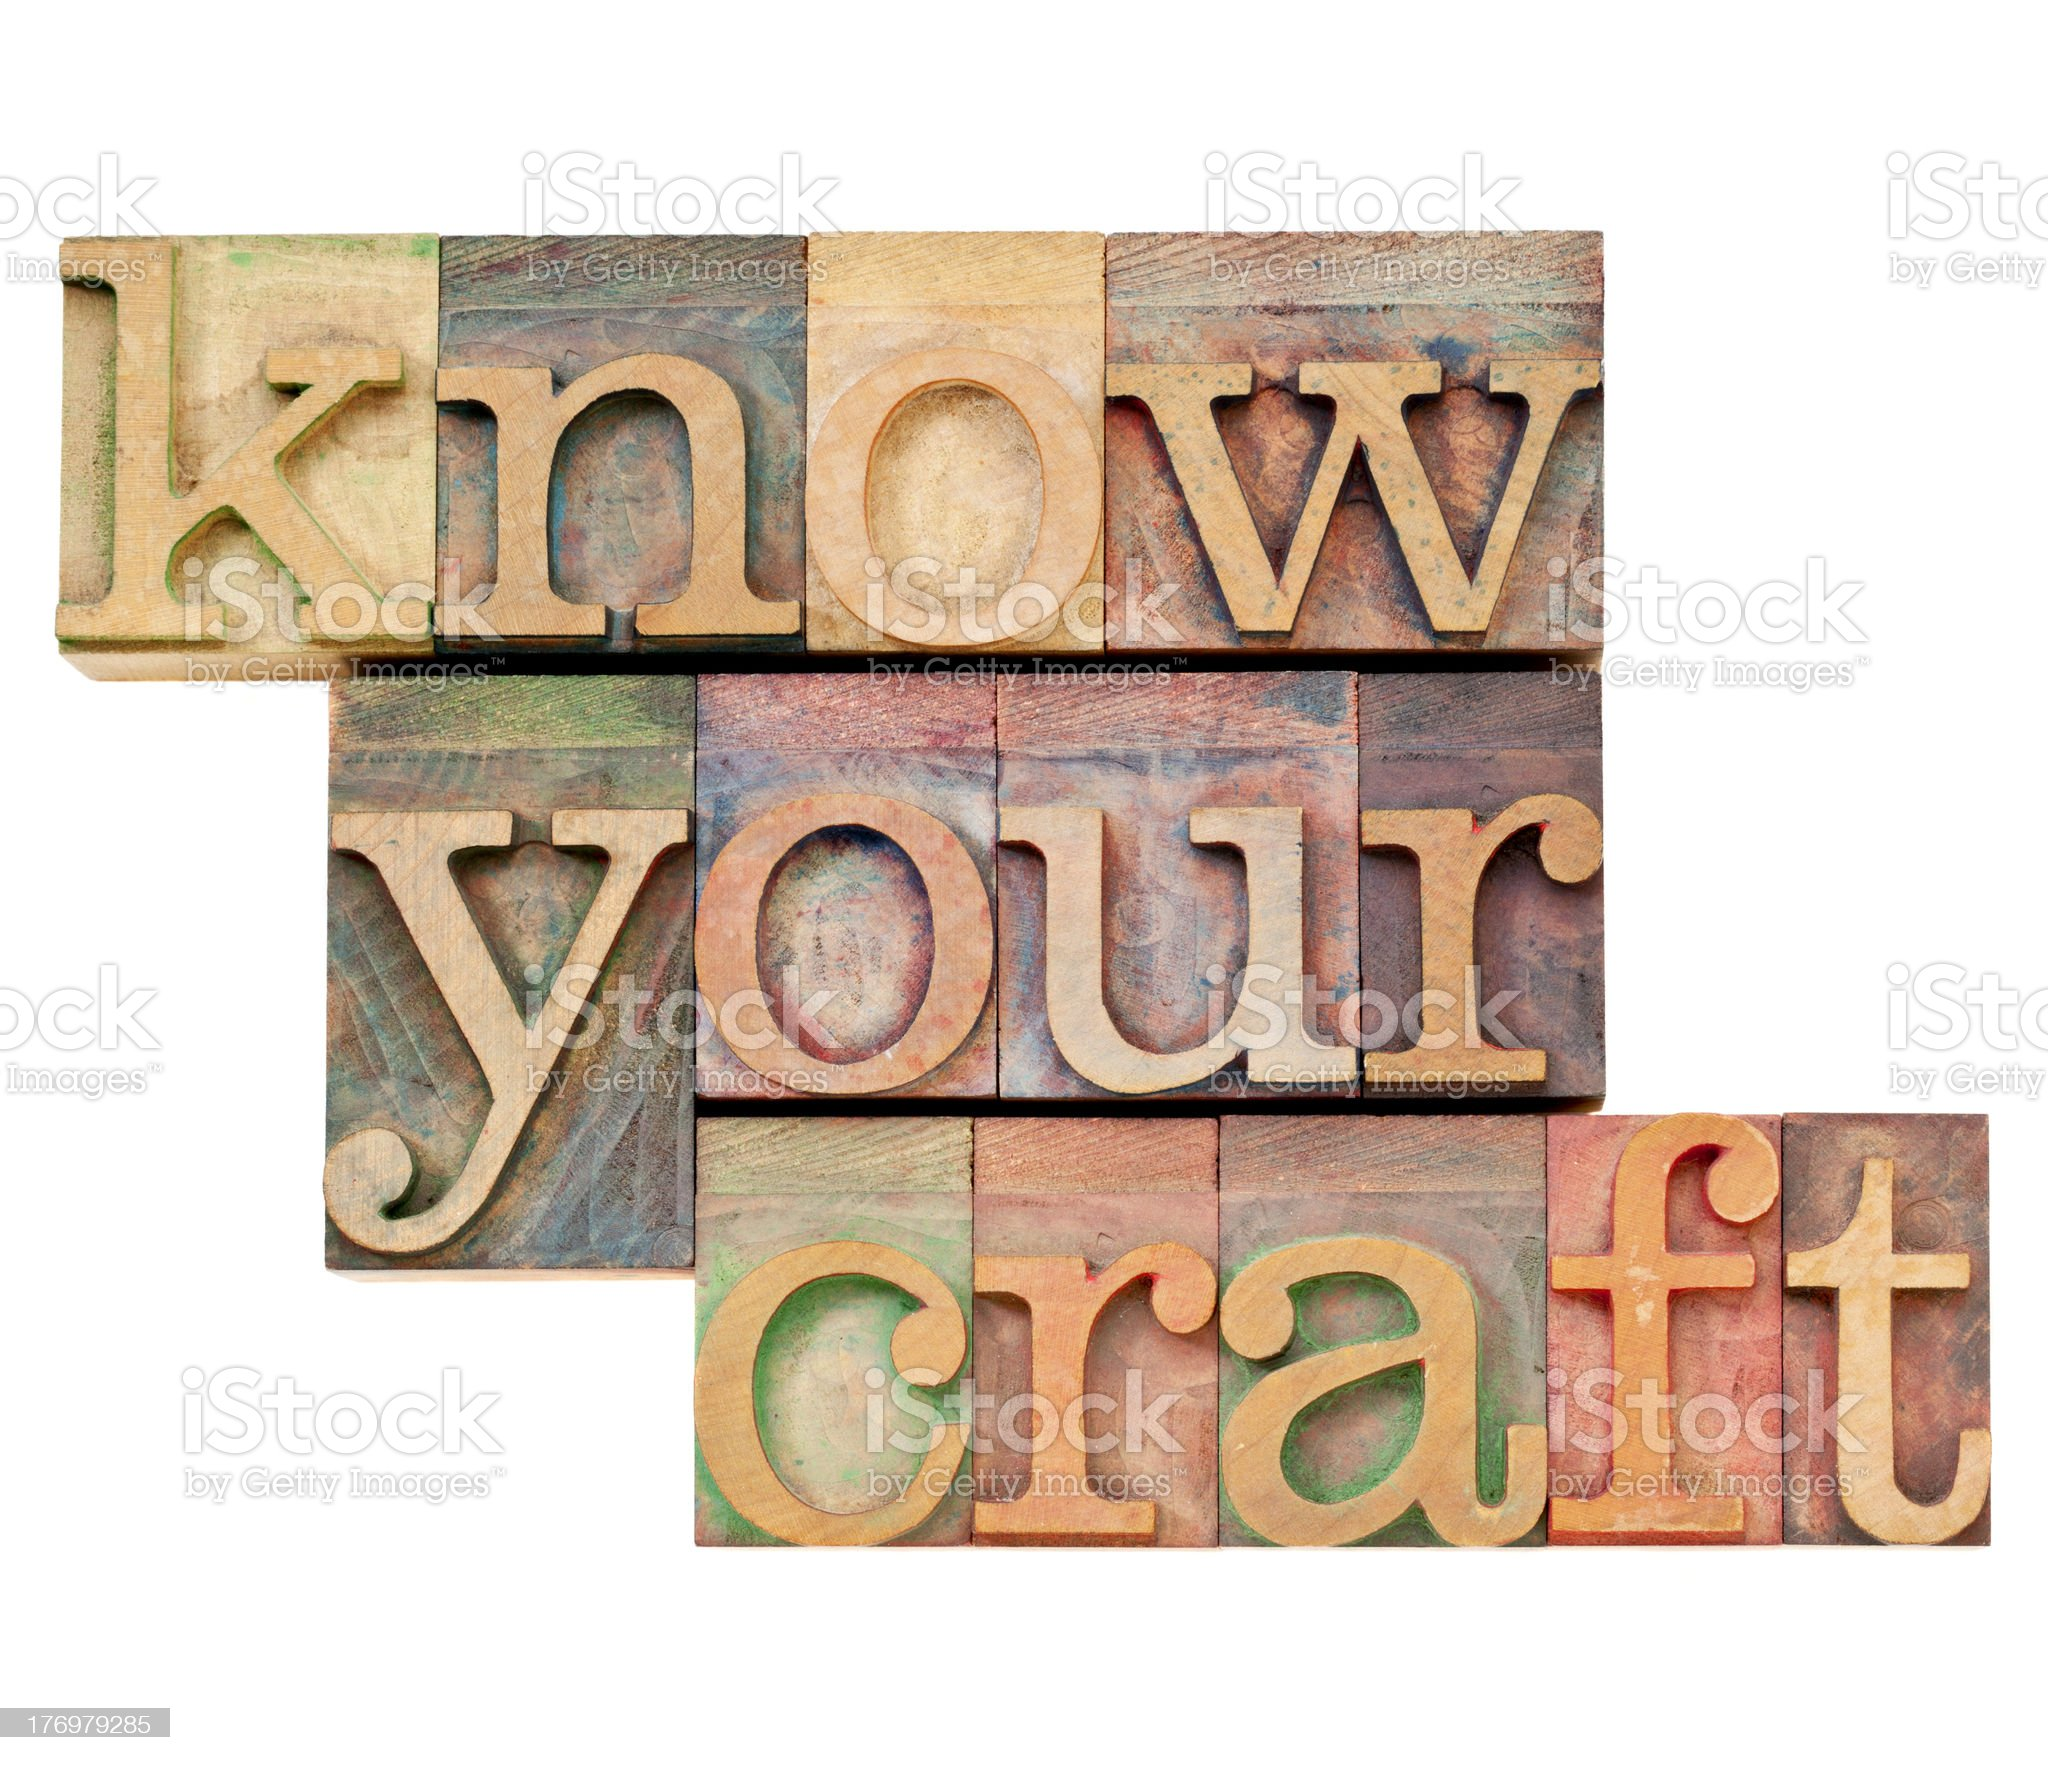 know your craft in letterpress type royalty-free stock photo